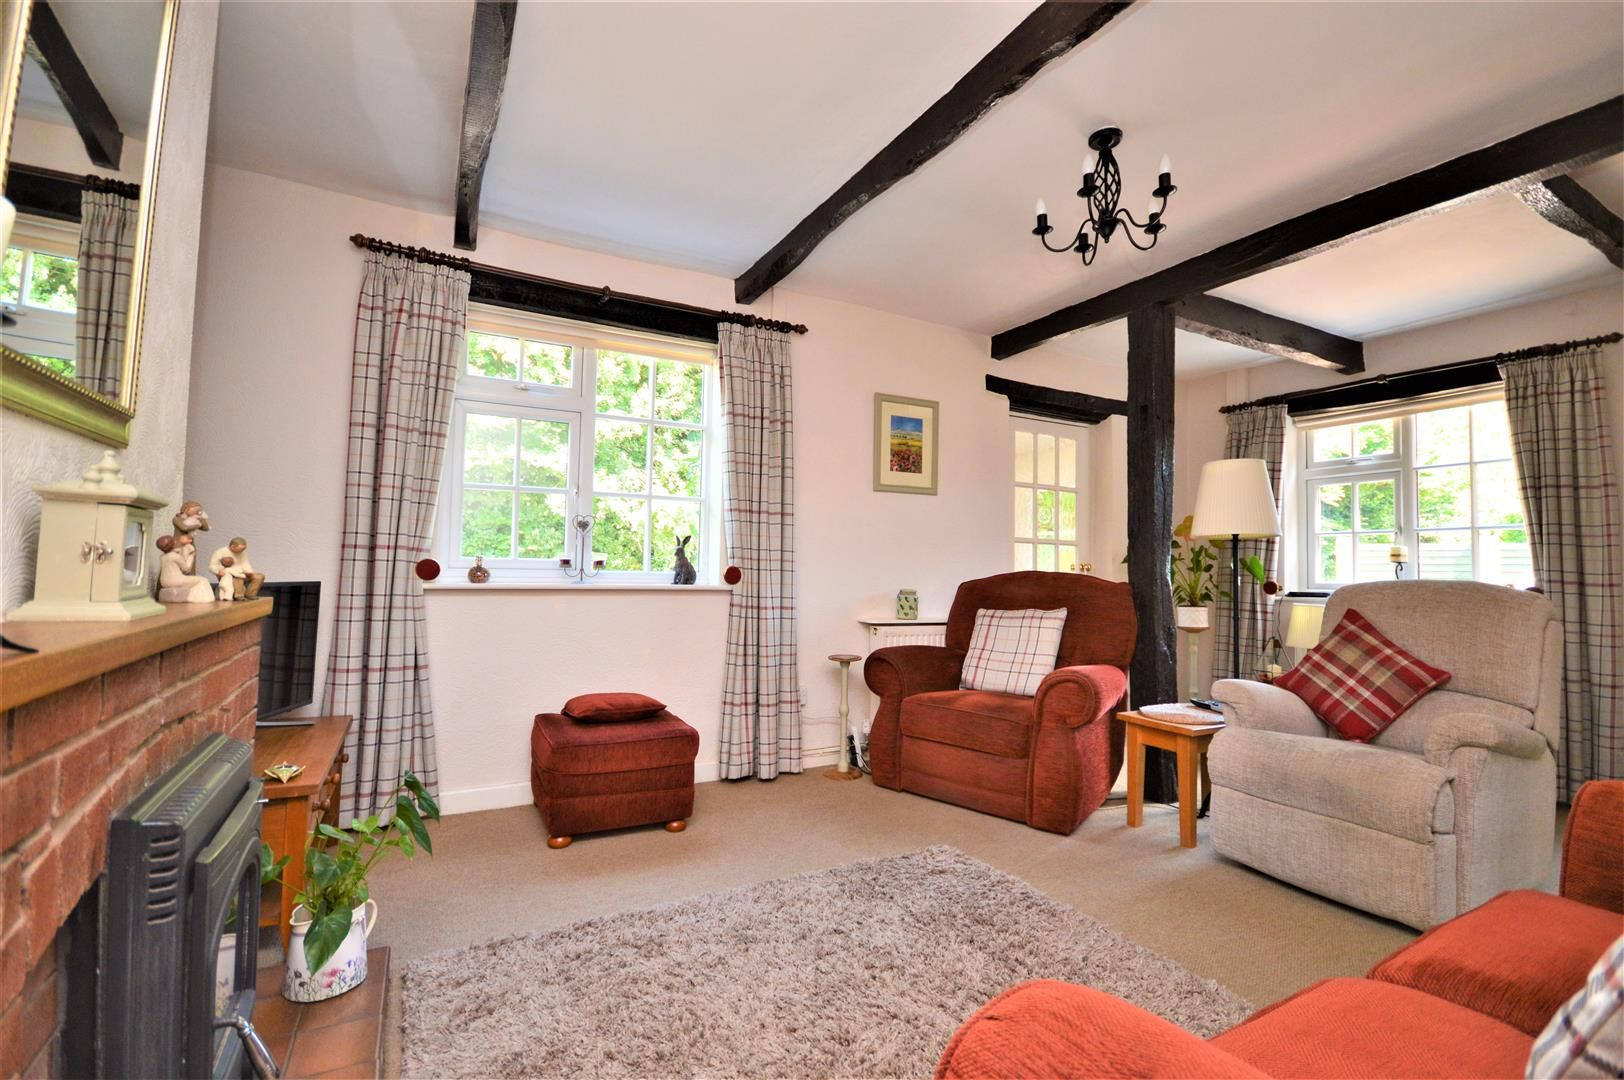 3 bed semi-detached for sale in Madley  - Property Image 8